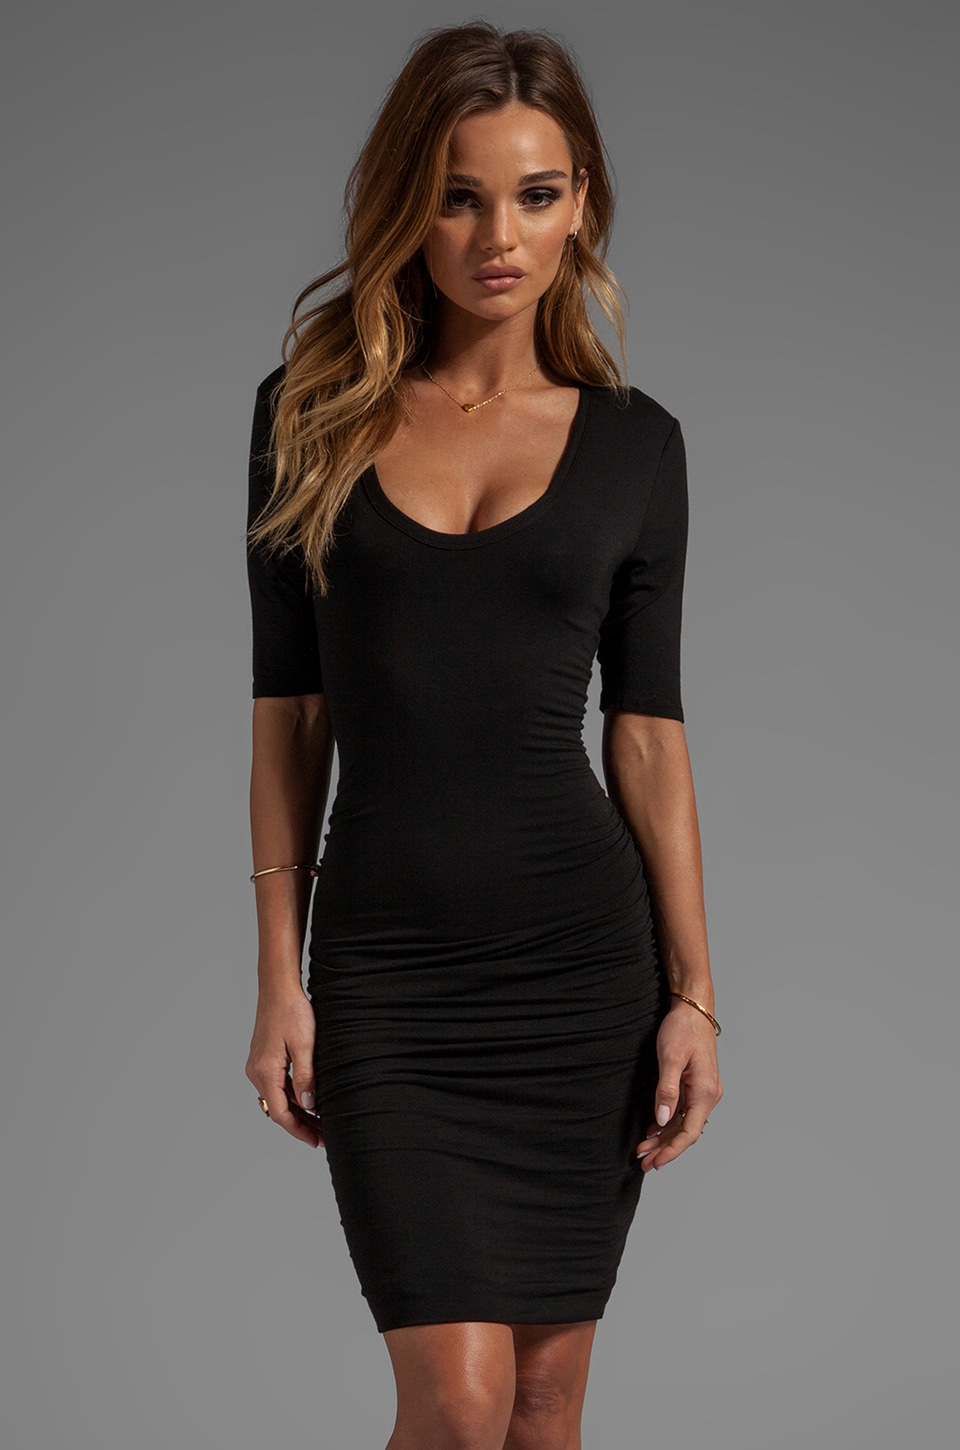 Bobi Ruched Scoop Neck Dress in Black